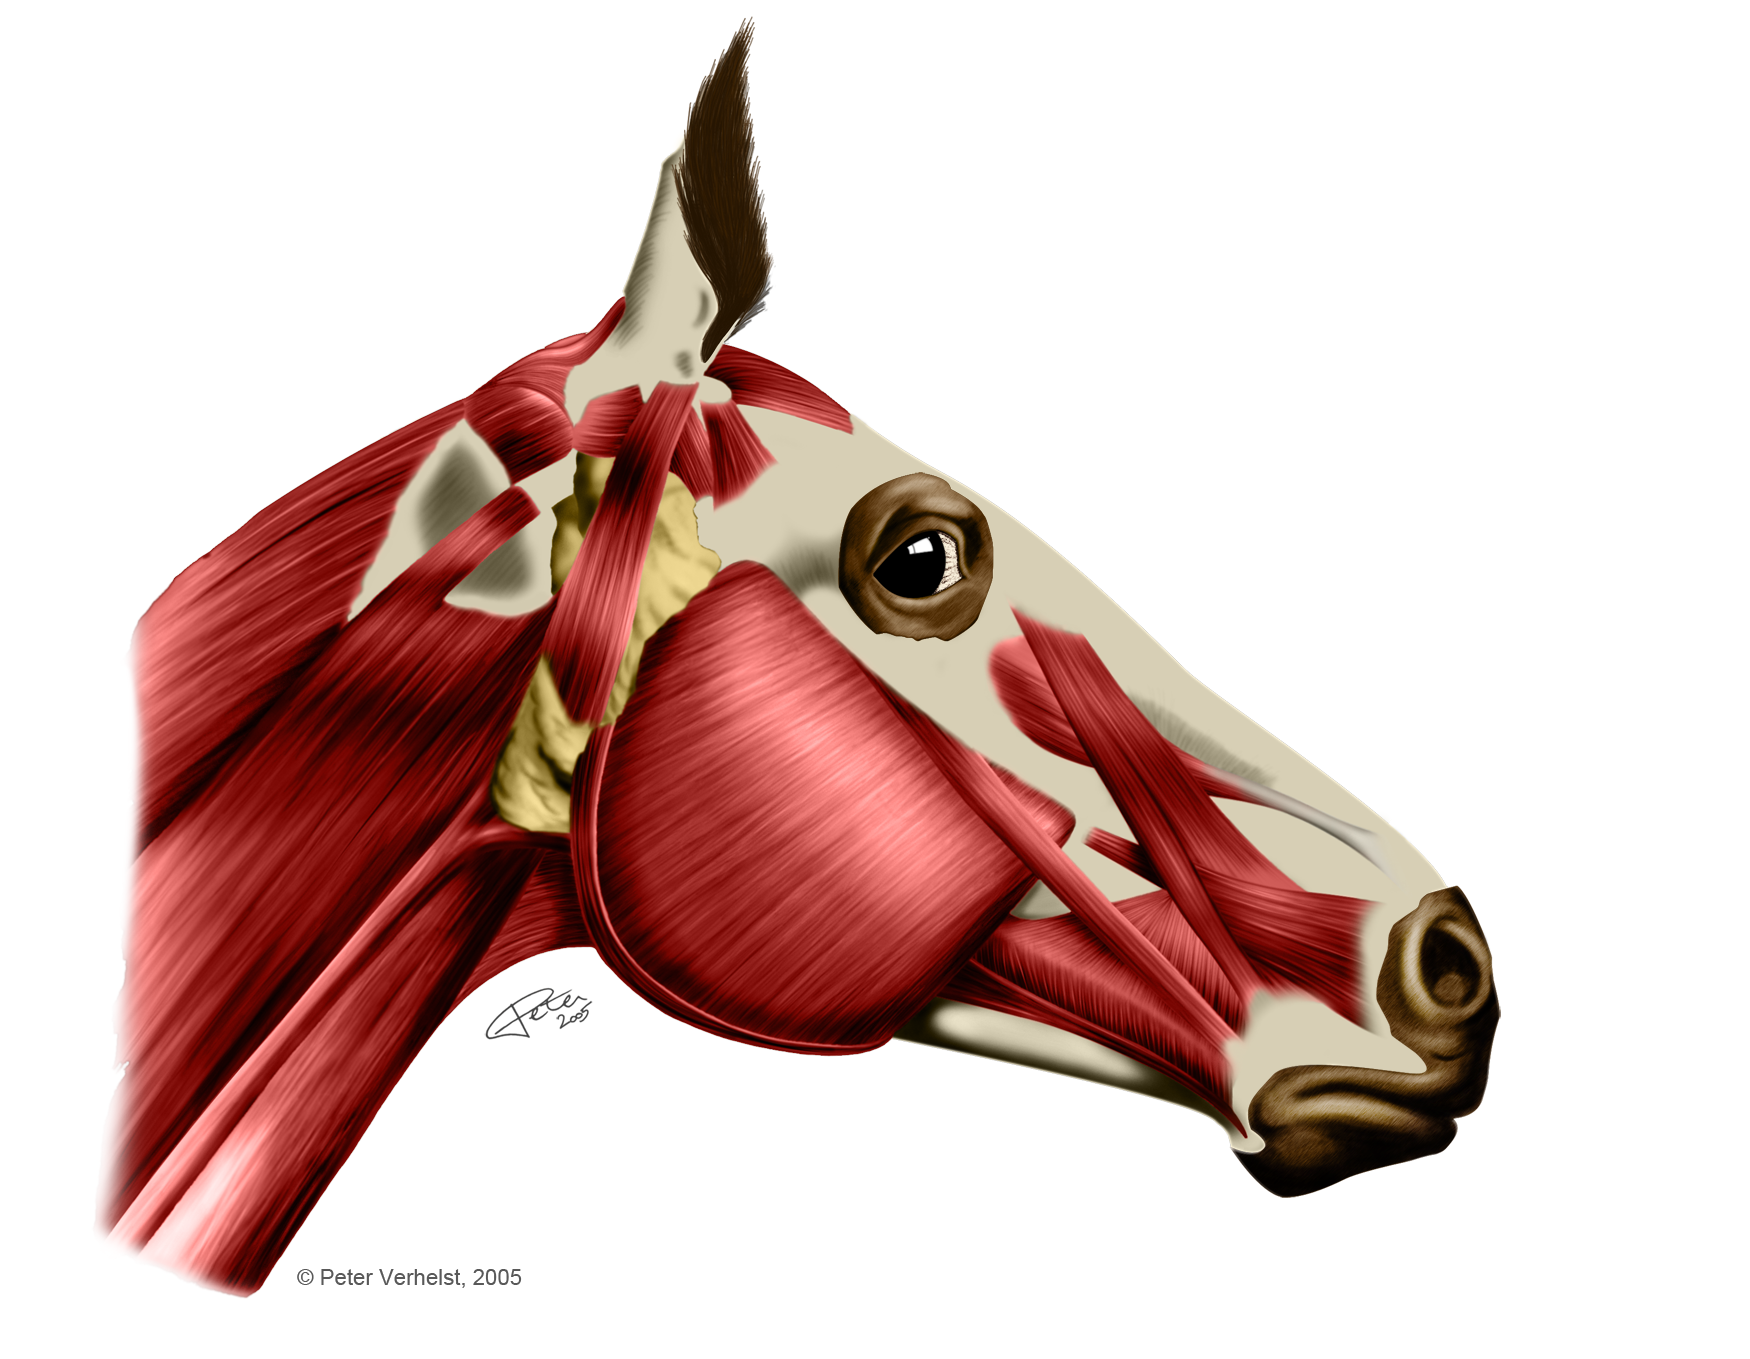 Horse Anatomy Muscles Images - human body anatomy